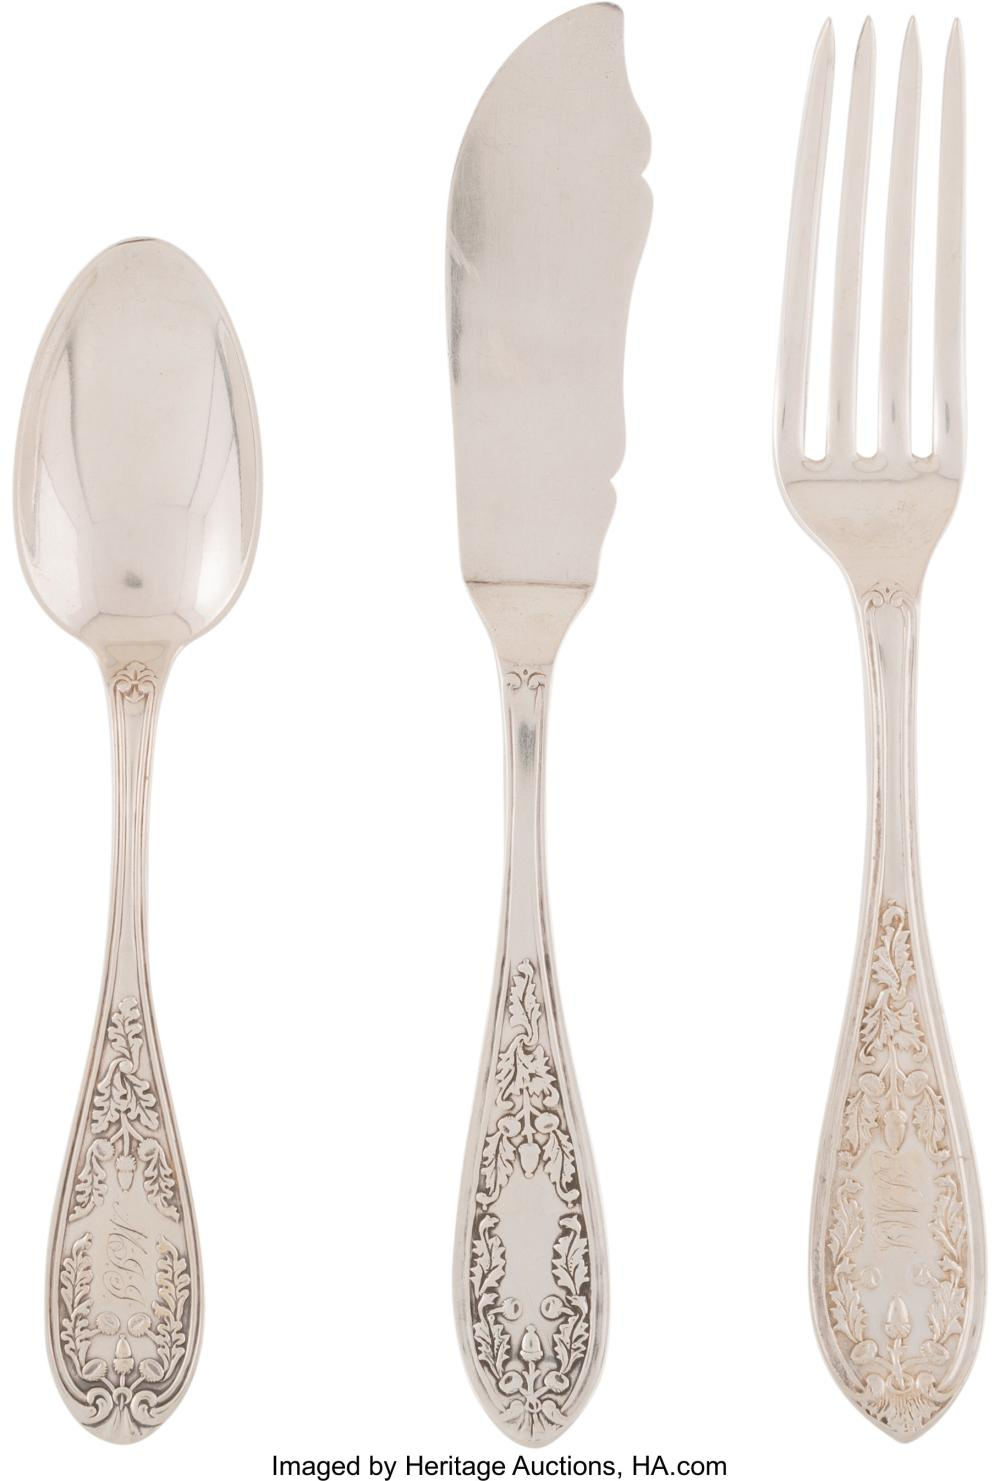 Twenty-Three Pieces of J.E. Caldwell Silver Flatware, Philadelphia, late 19th-ea